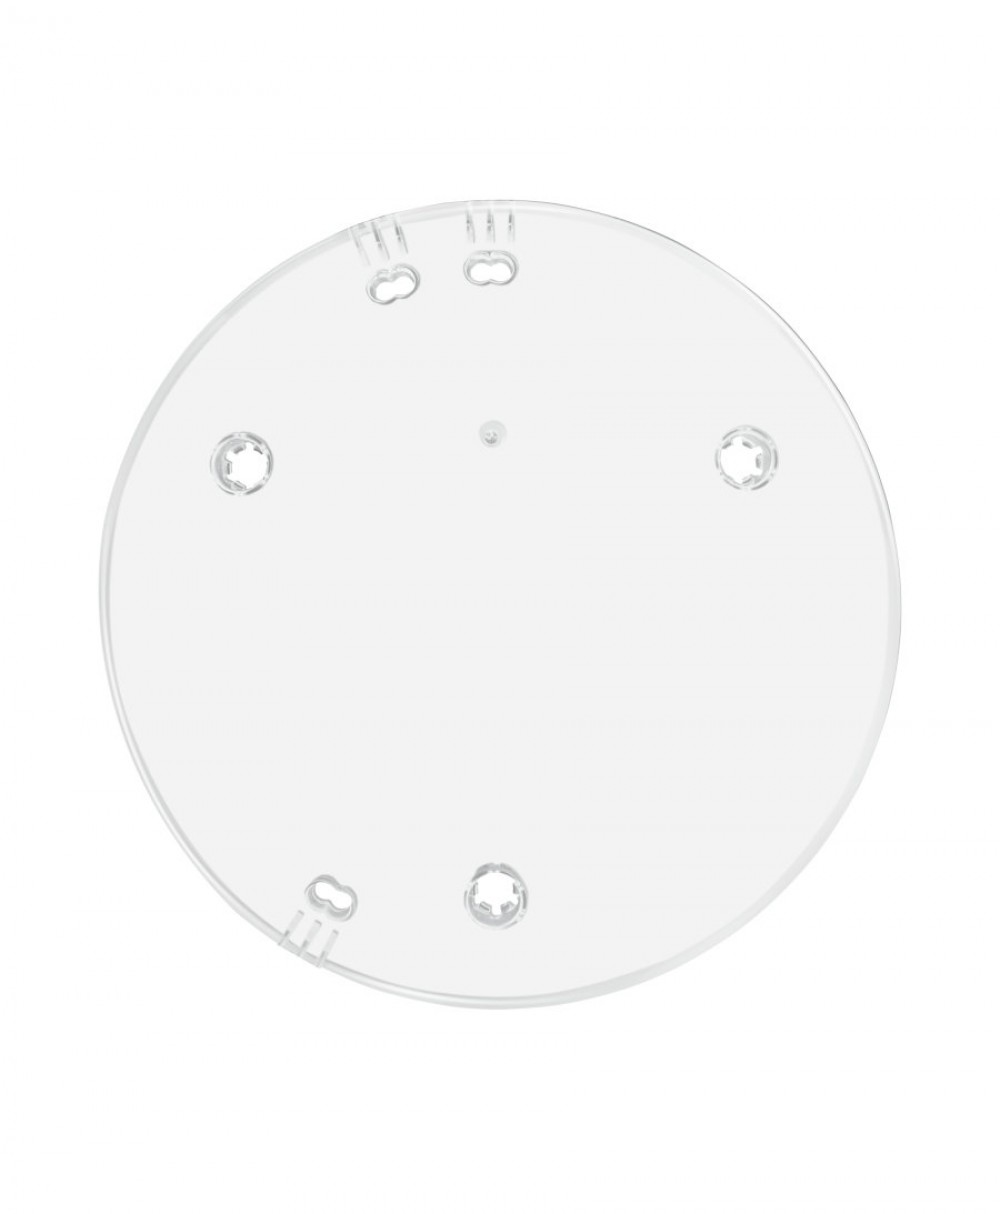 PrevaLED Flat Touch protection, PL-FLTP 240 G2